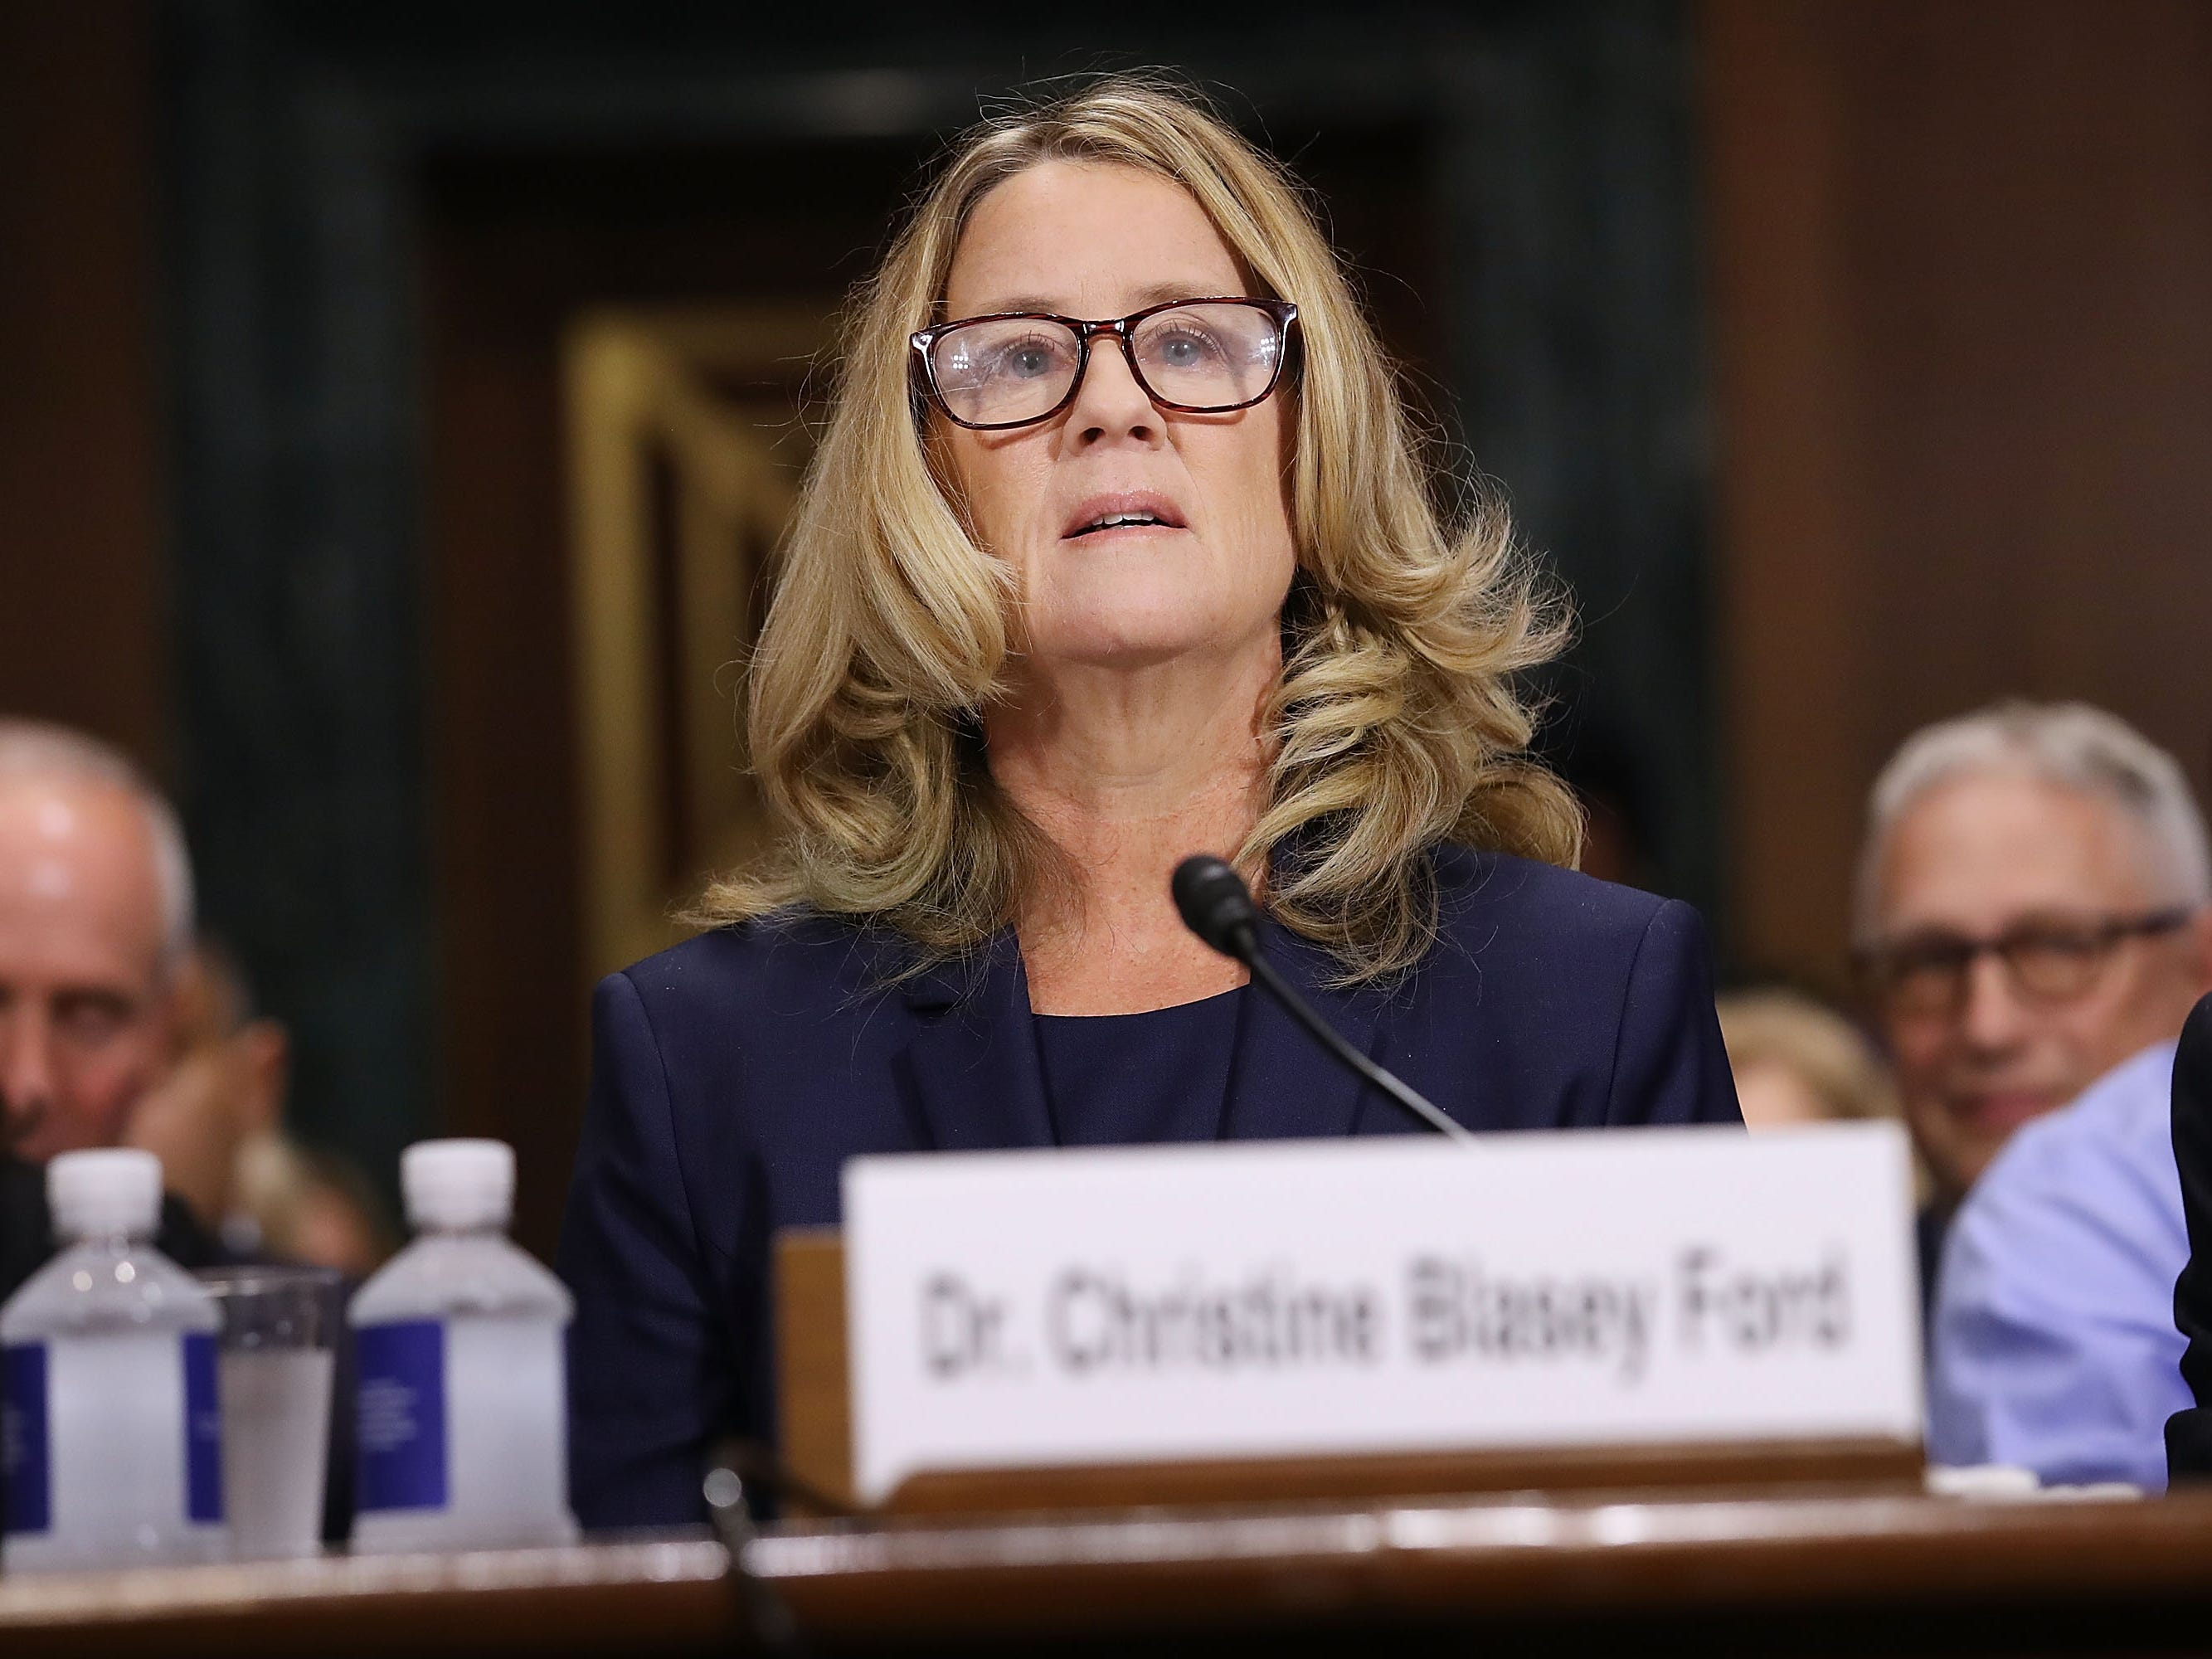 Christine Blasey Ford prepares to testify before the Senate Judiciary Committee in the Dirksen Senate Office Building on Capitol Hill on Sept. 27, 2018, in Washington, D.C.